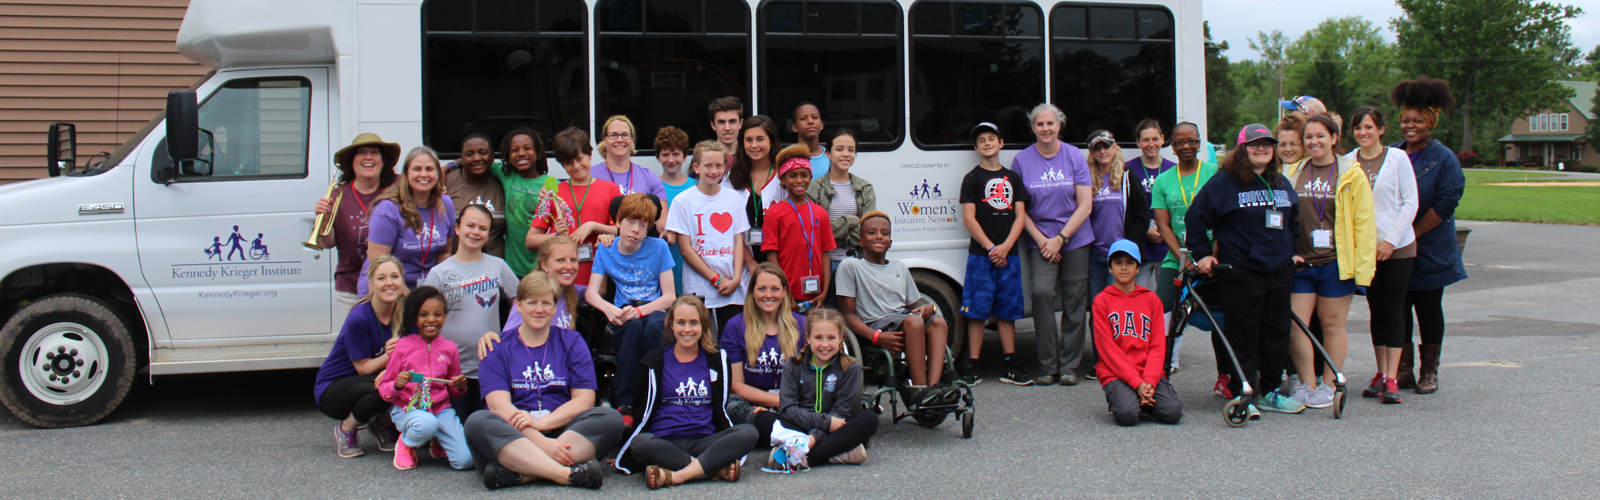 Camp SOAR campers with WIN bus